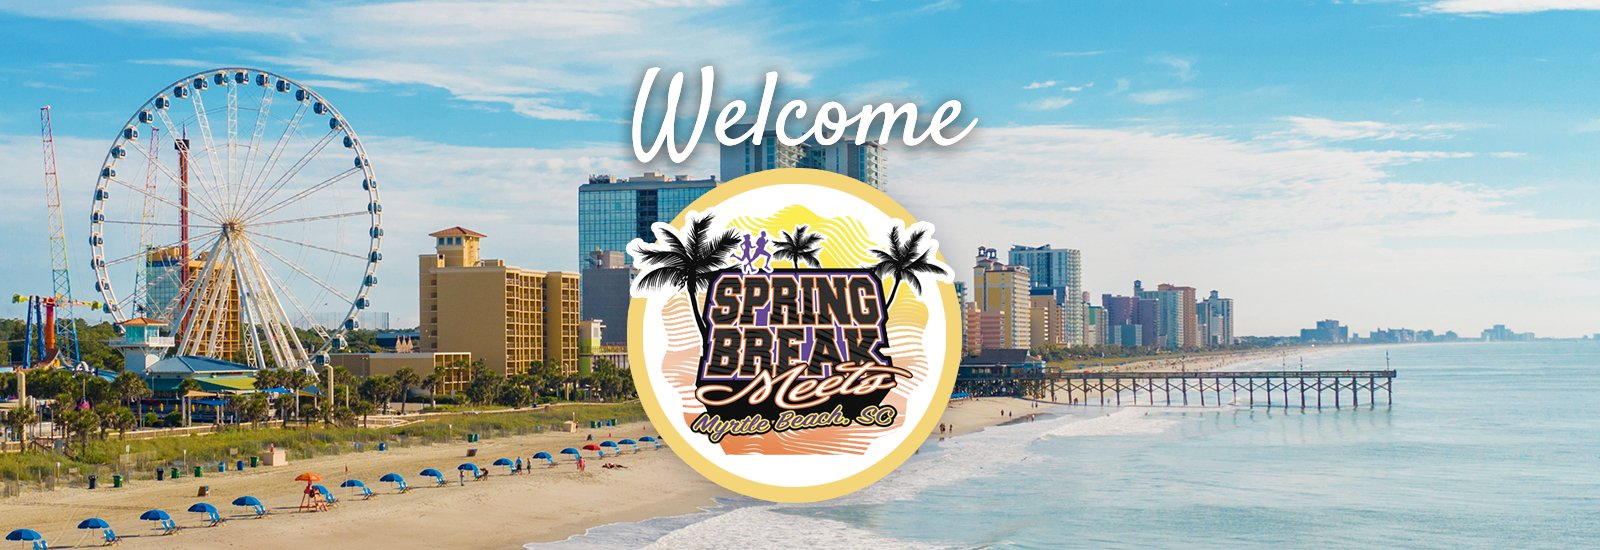 Myrtle Beach Track and Field Spring Break Meets